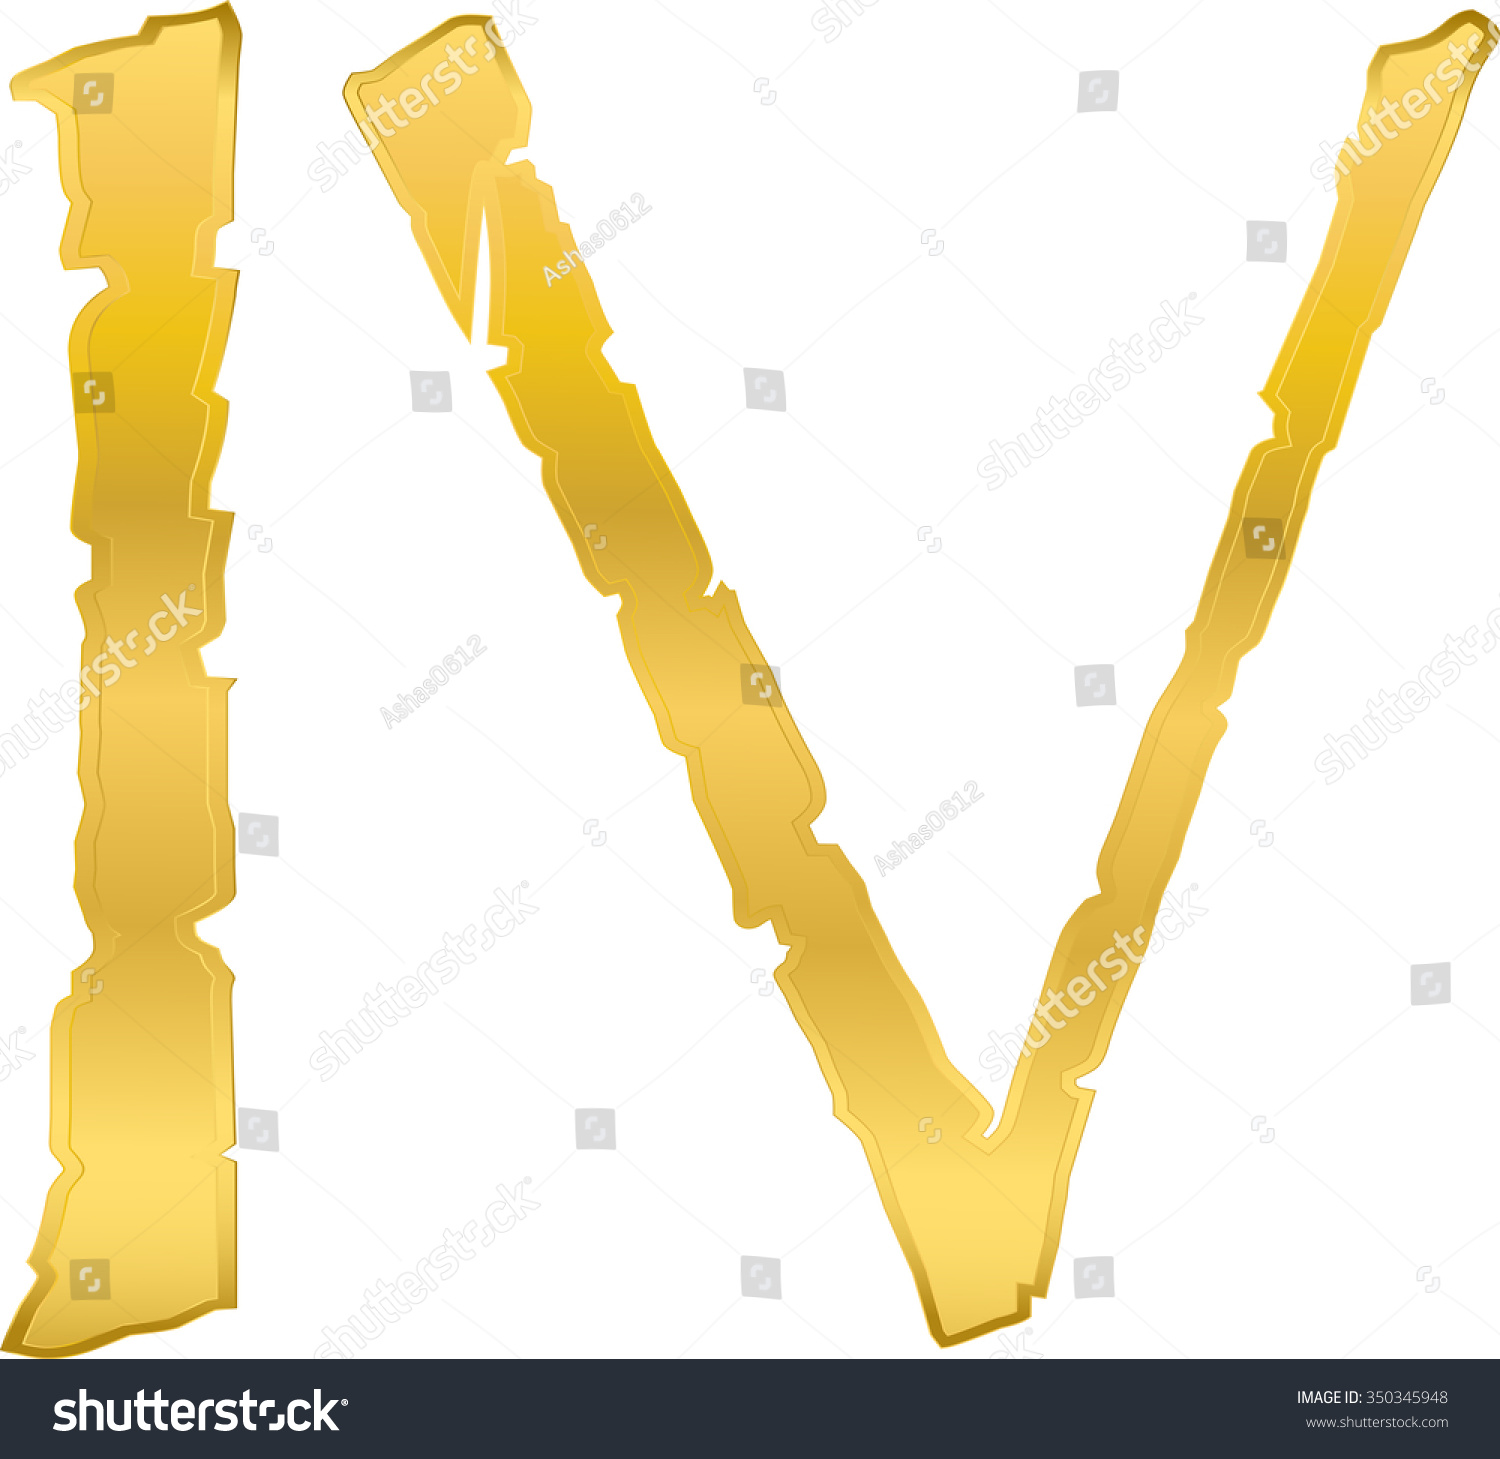 Worksheet Roman Numerals Four roman numeral four metal gold on a white background from one to save lightbox